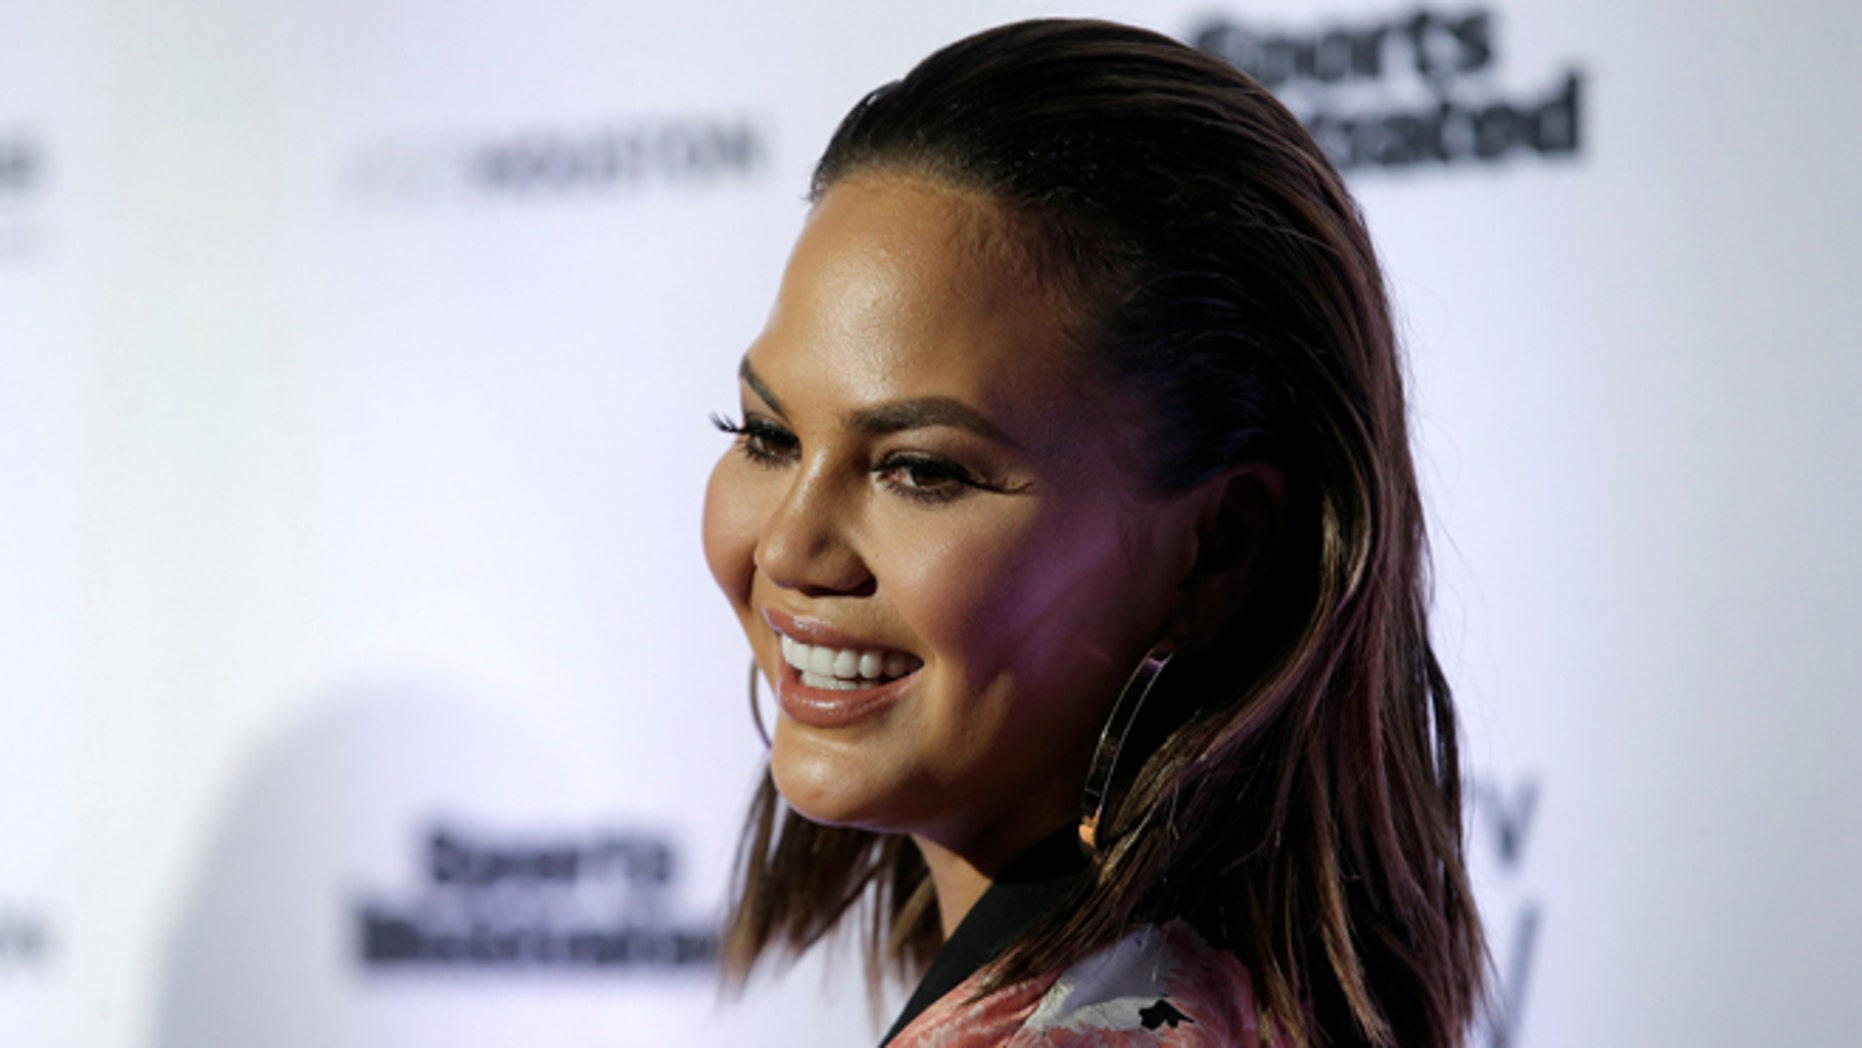 Chrissy Teigen helped an aspiring beauty school student by donating money for her tuition